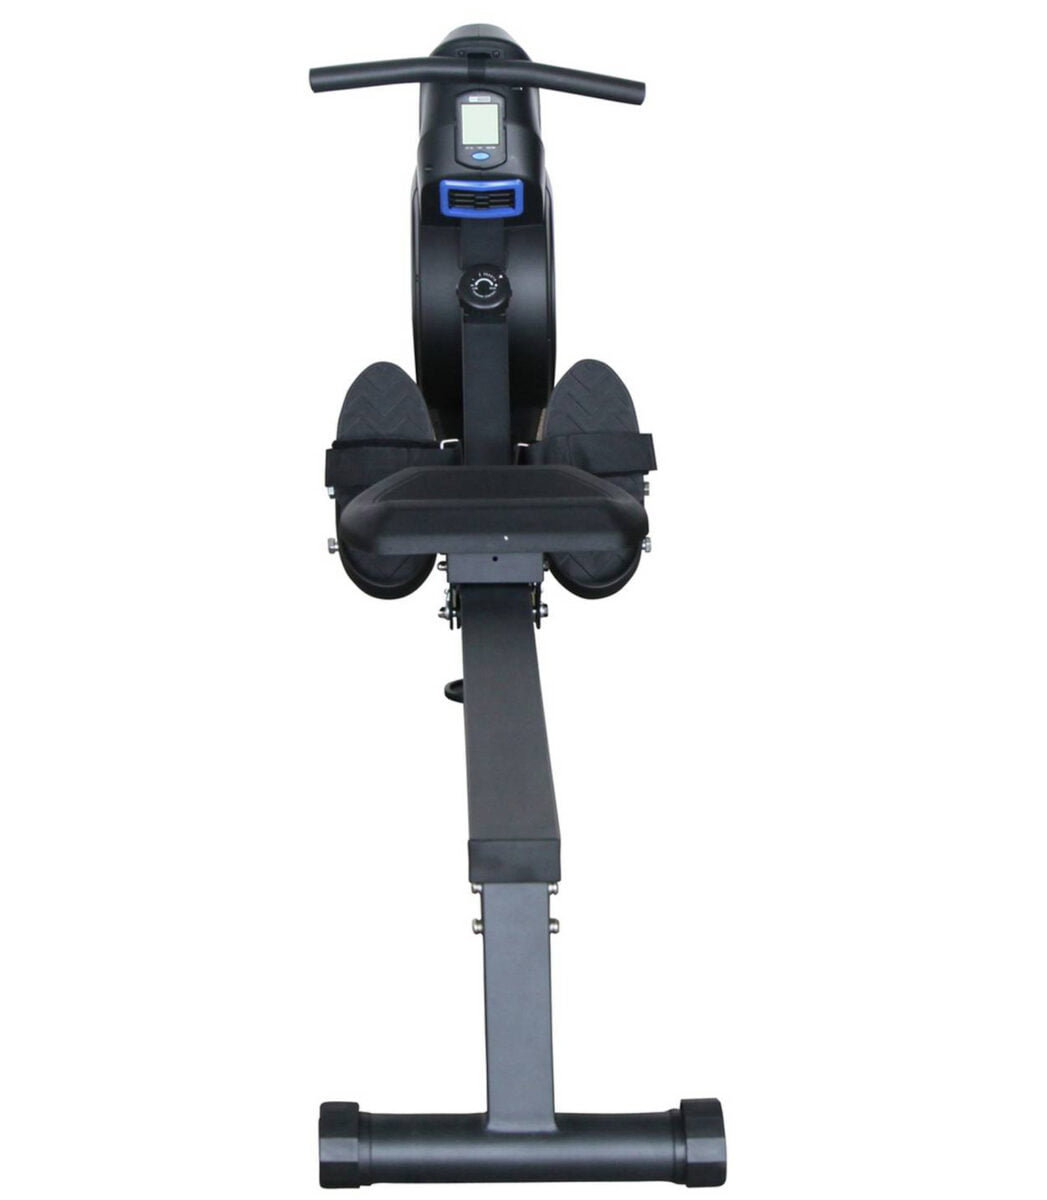 Pro Fitness Air and Magnetic Rowing Machine Top View